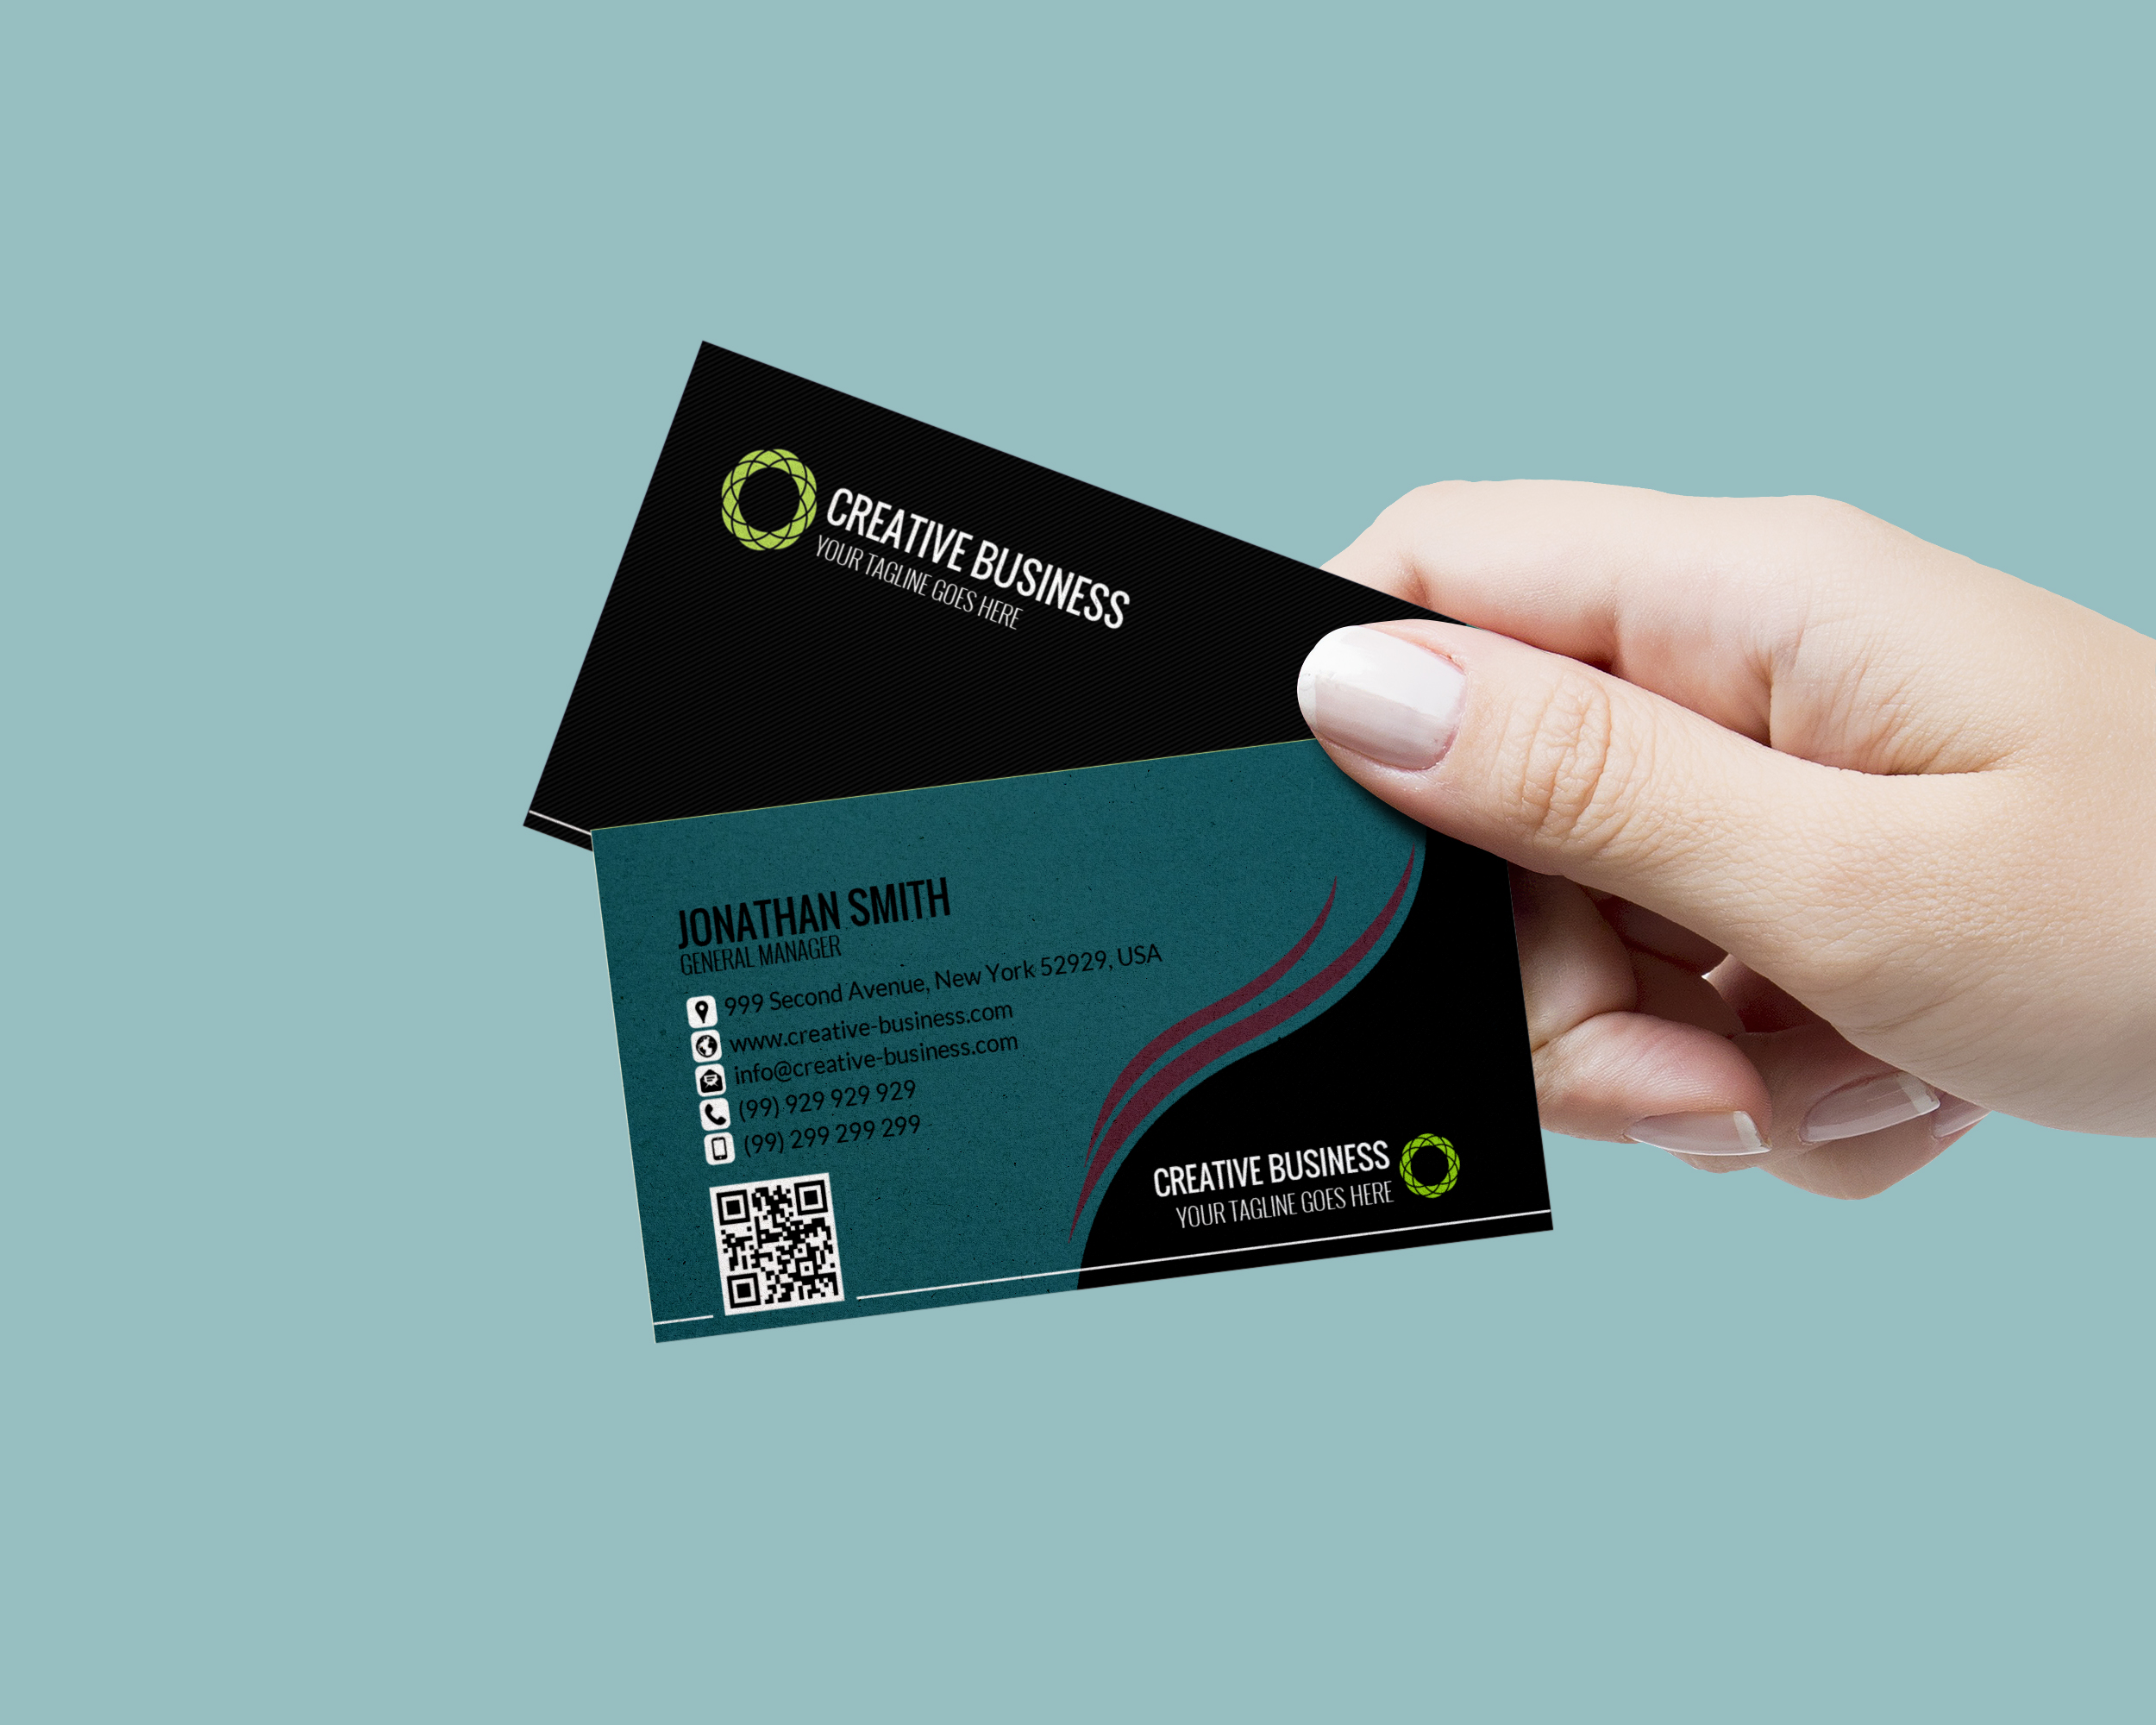 I will design an amazing professional business card for you